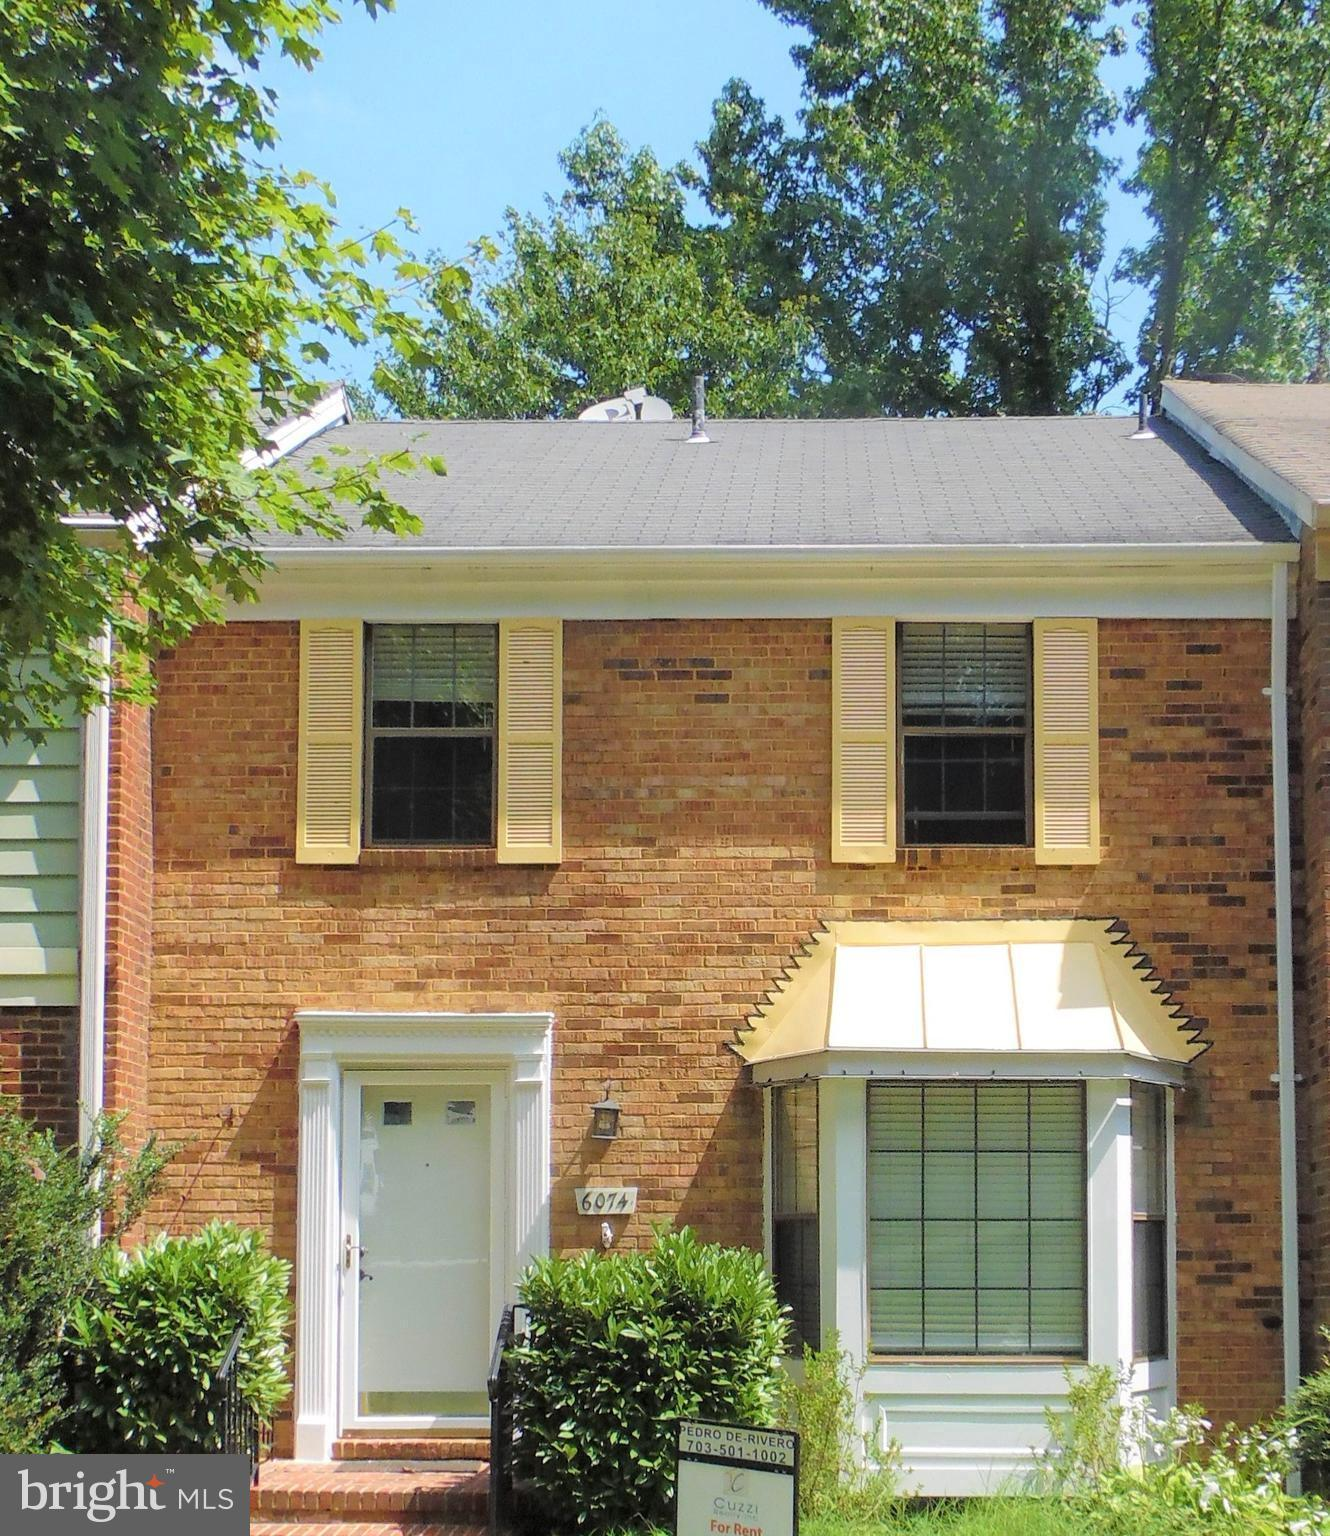 Brick Townhouse three levels on Cardinal Glen Subdivision. Three bedrooms, two full bathrooms and tw